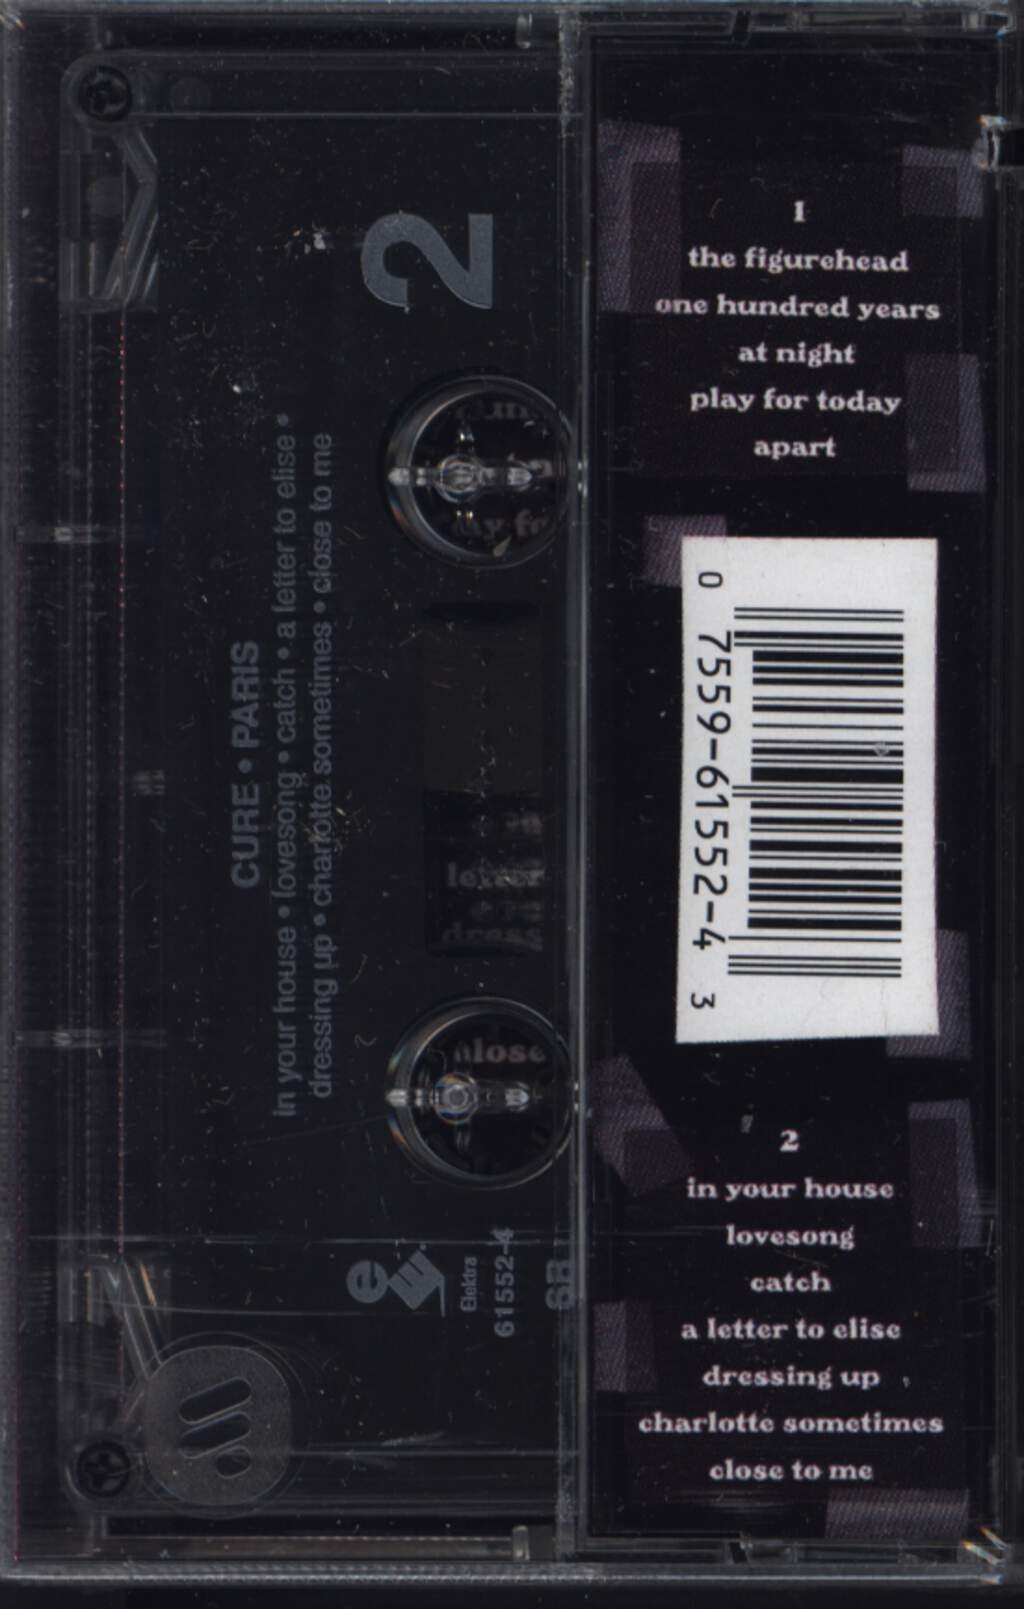 The Cure: Paris, Compact Cassette